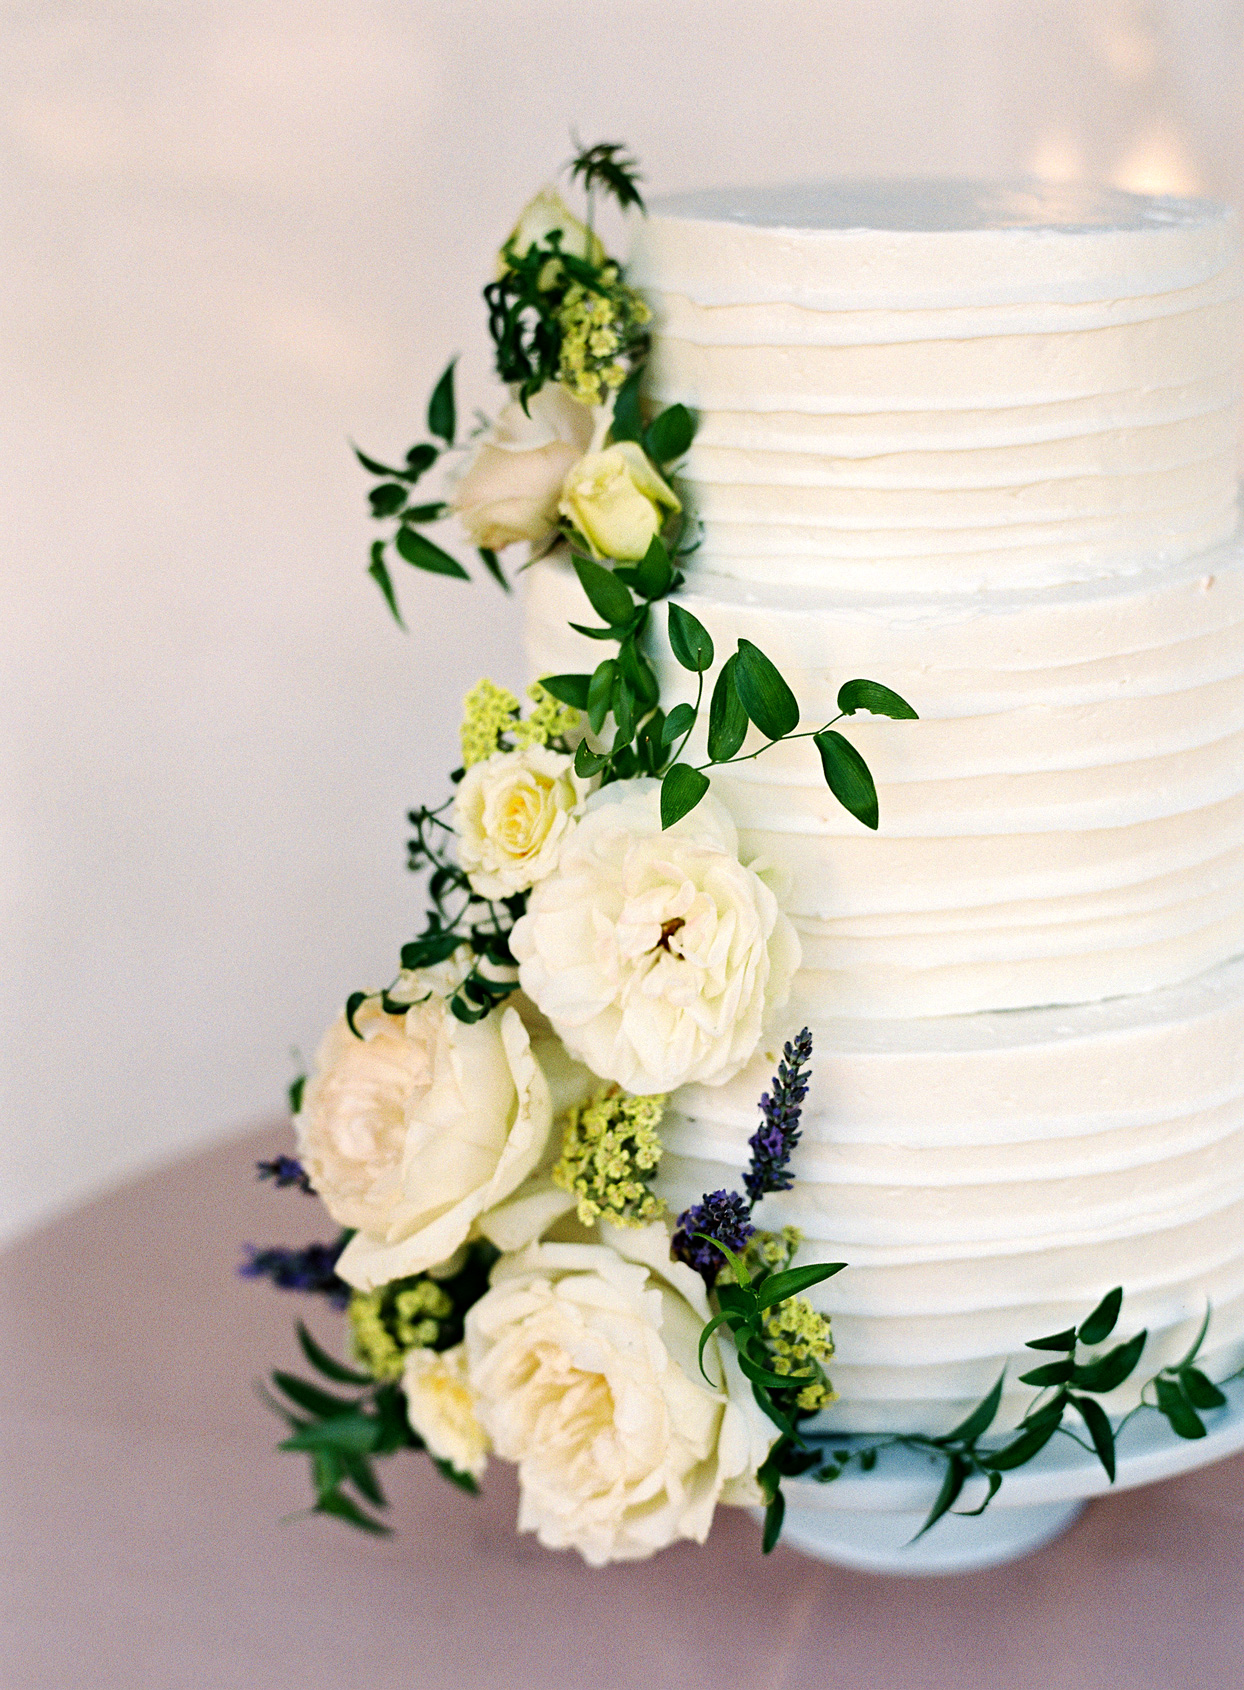 three tiered white frosted wedding cake with floral accent down the side